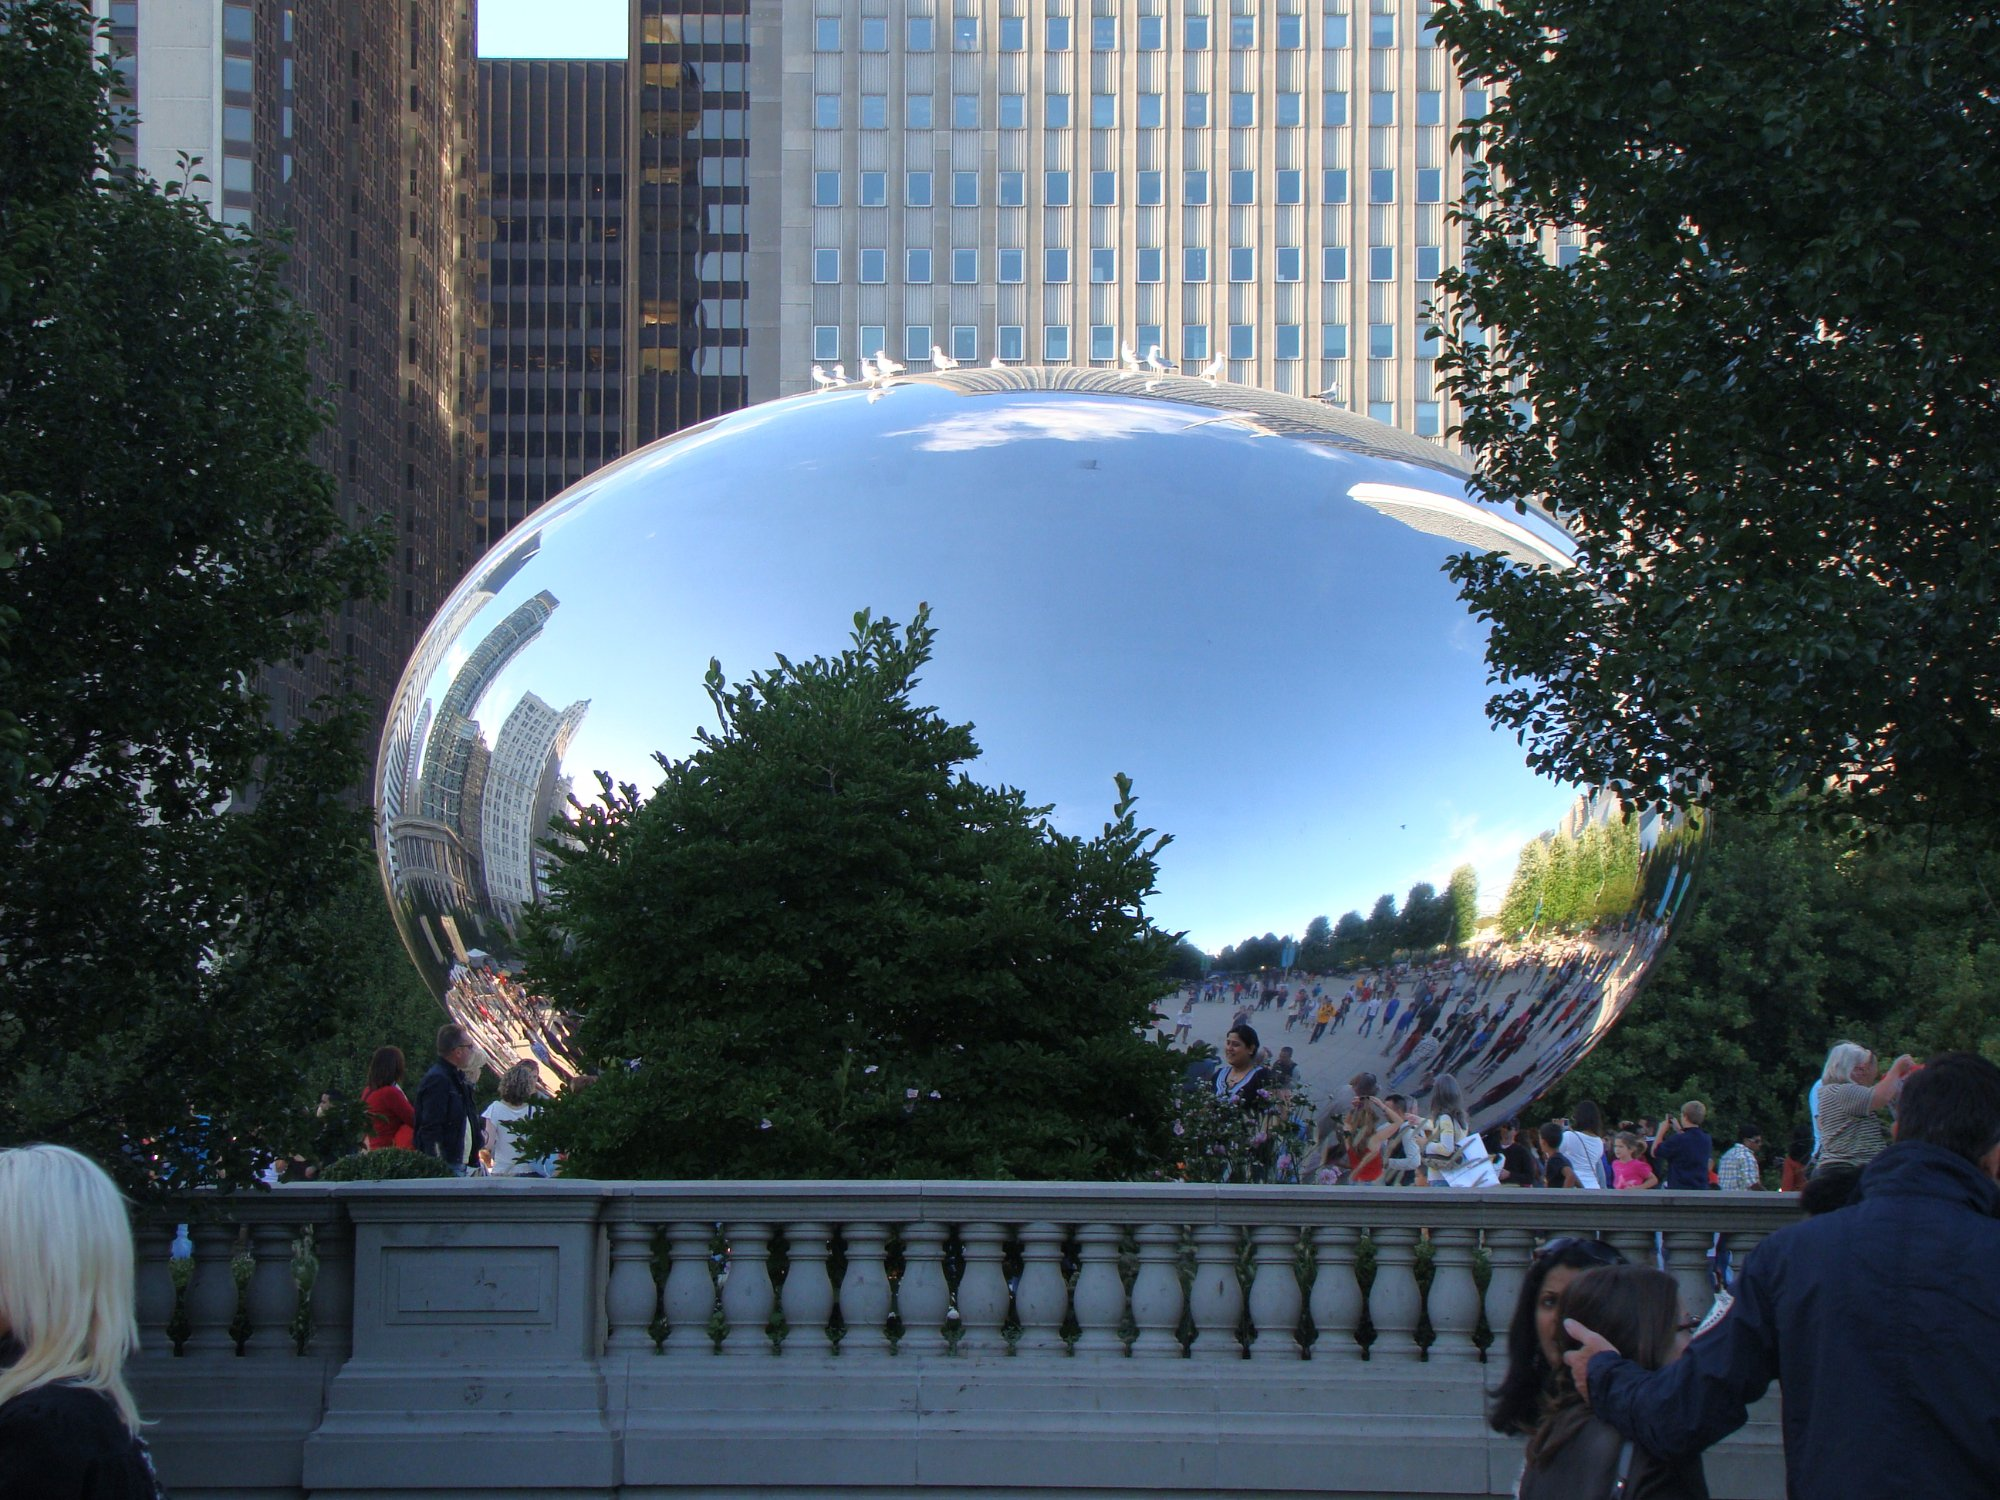 Chicago has its own grandeur! The picture depicts the Reflection of the city & people beautifull